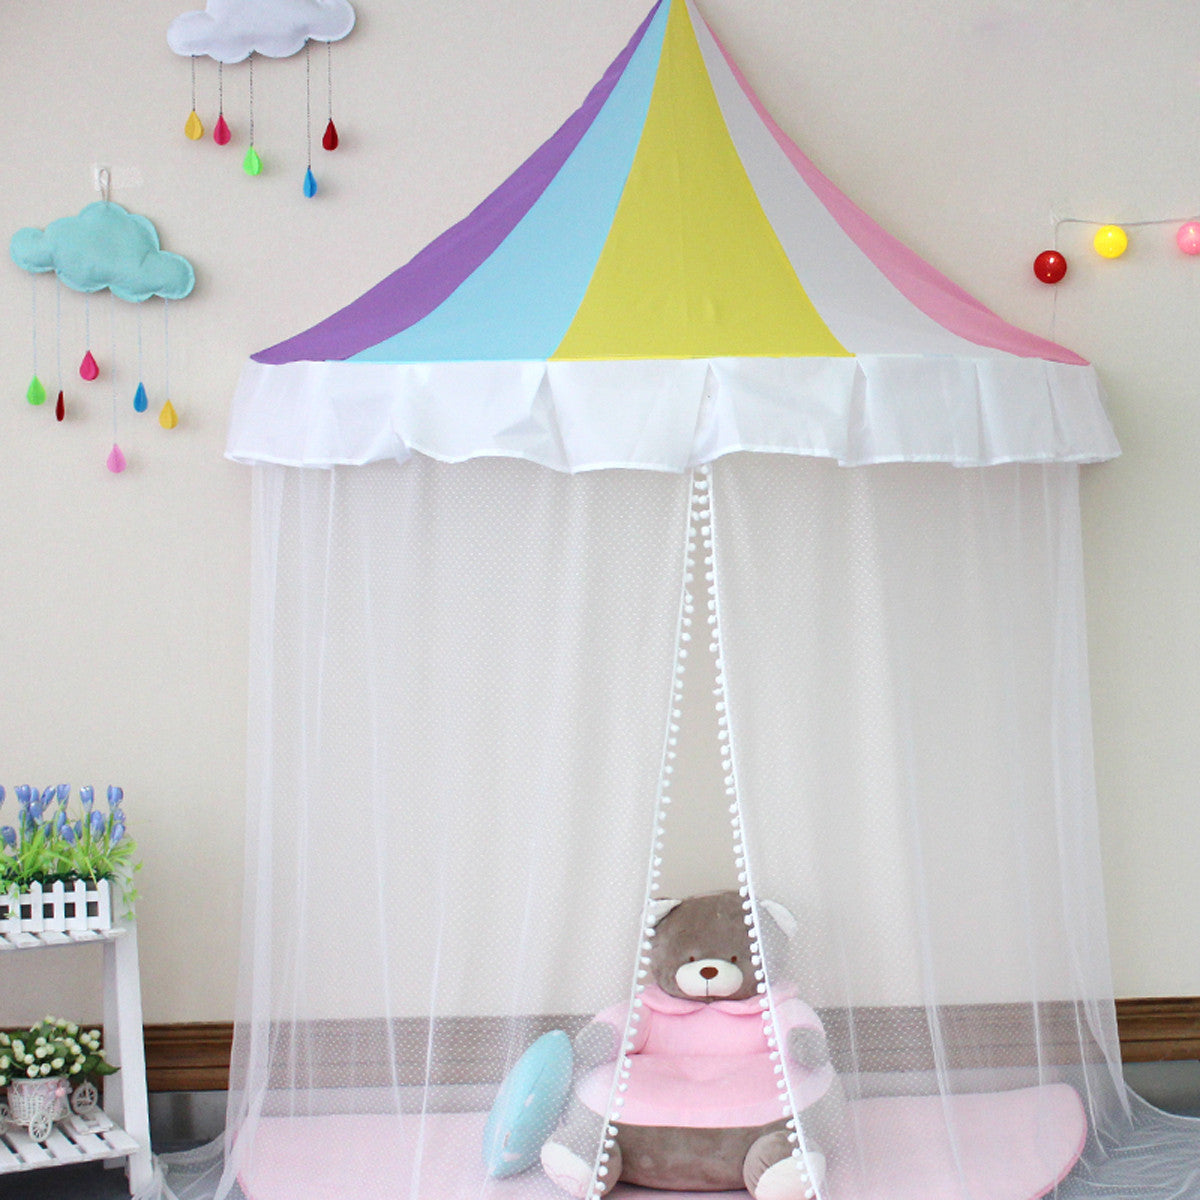 Princess Bed Canopy Reading Corner for Kids Indoor  sc 1 st  TRUEDAYS & Princess Bed Canopy Reading Corner for Kids Indoor u2013 TRUEDAYS